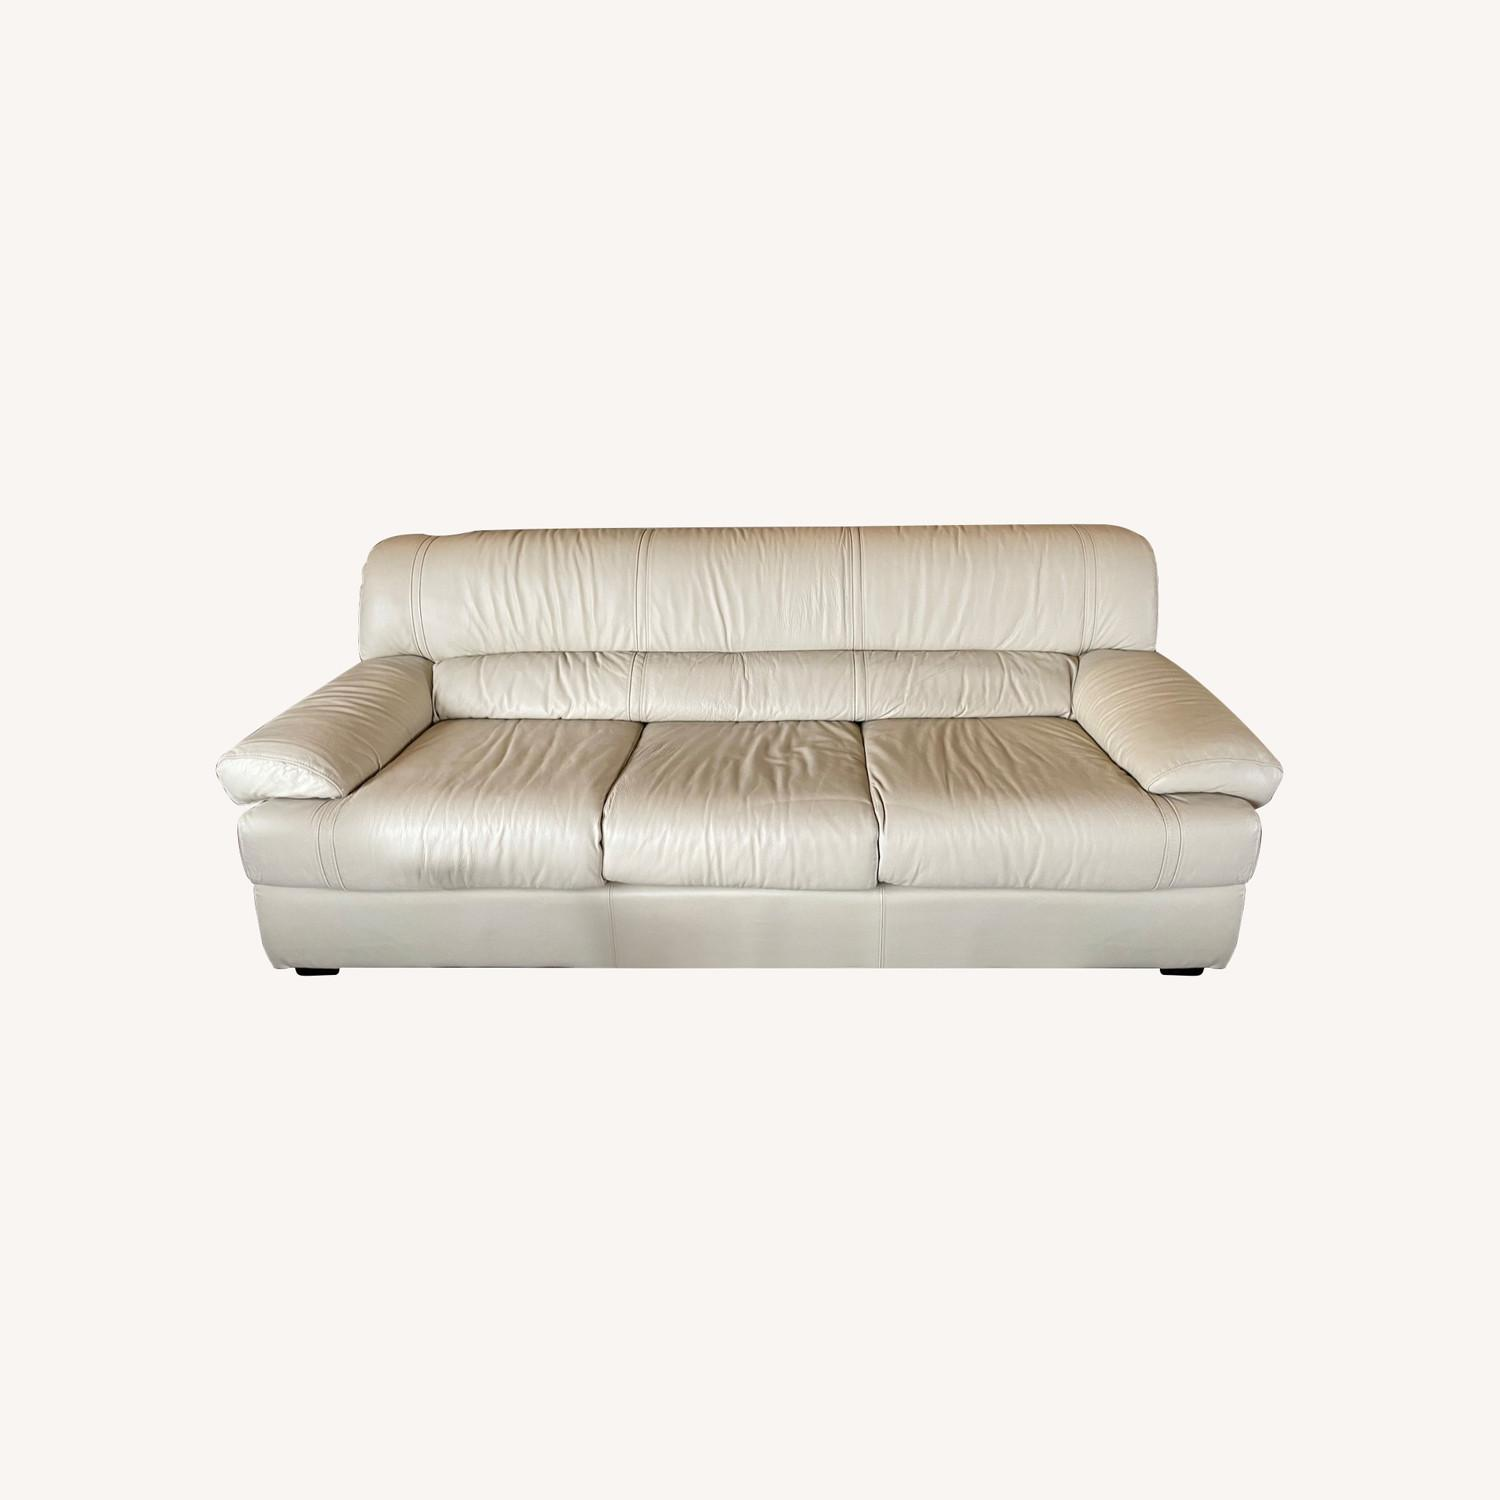 Leather Sofa Set Made in Italy - image-0